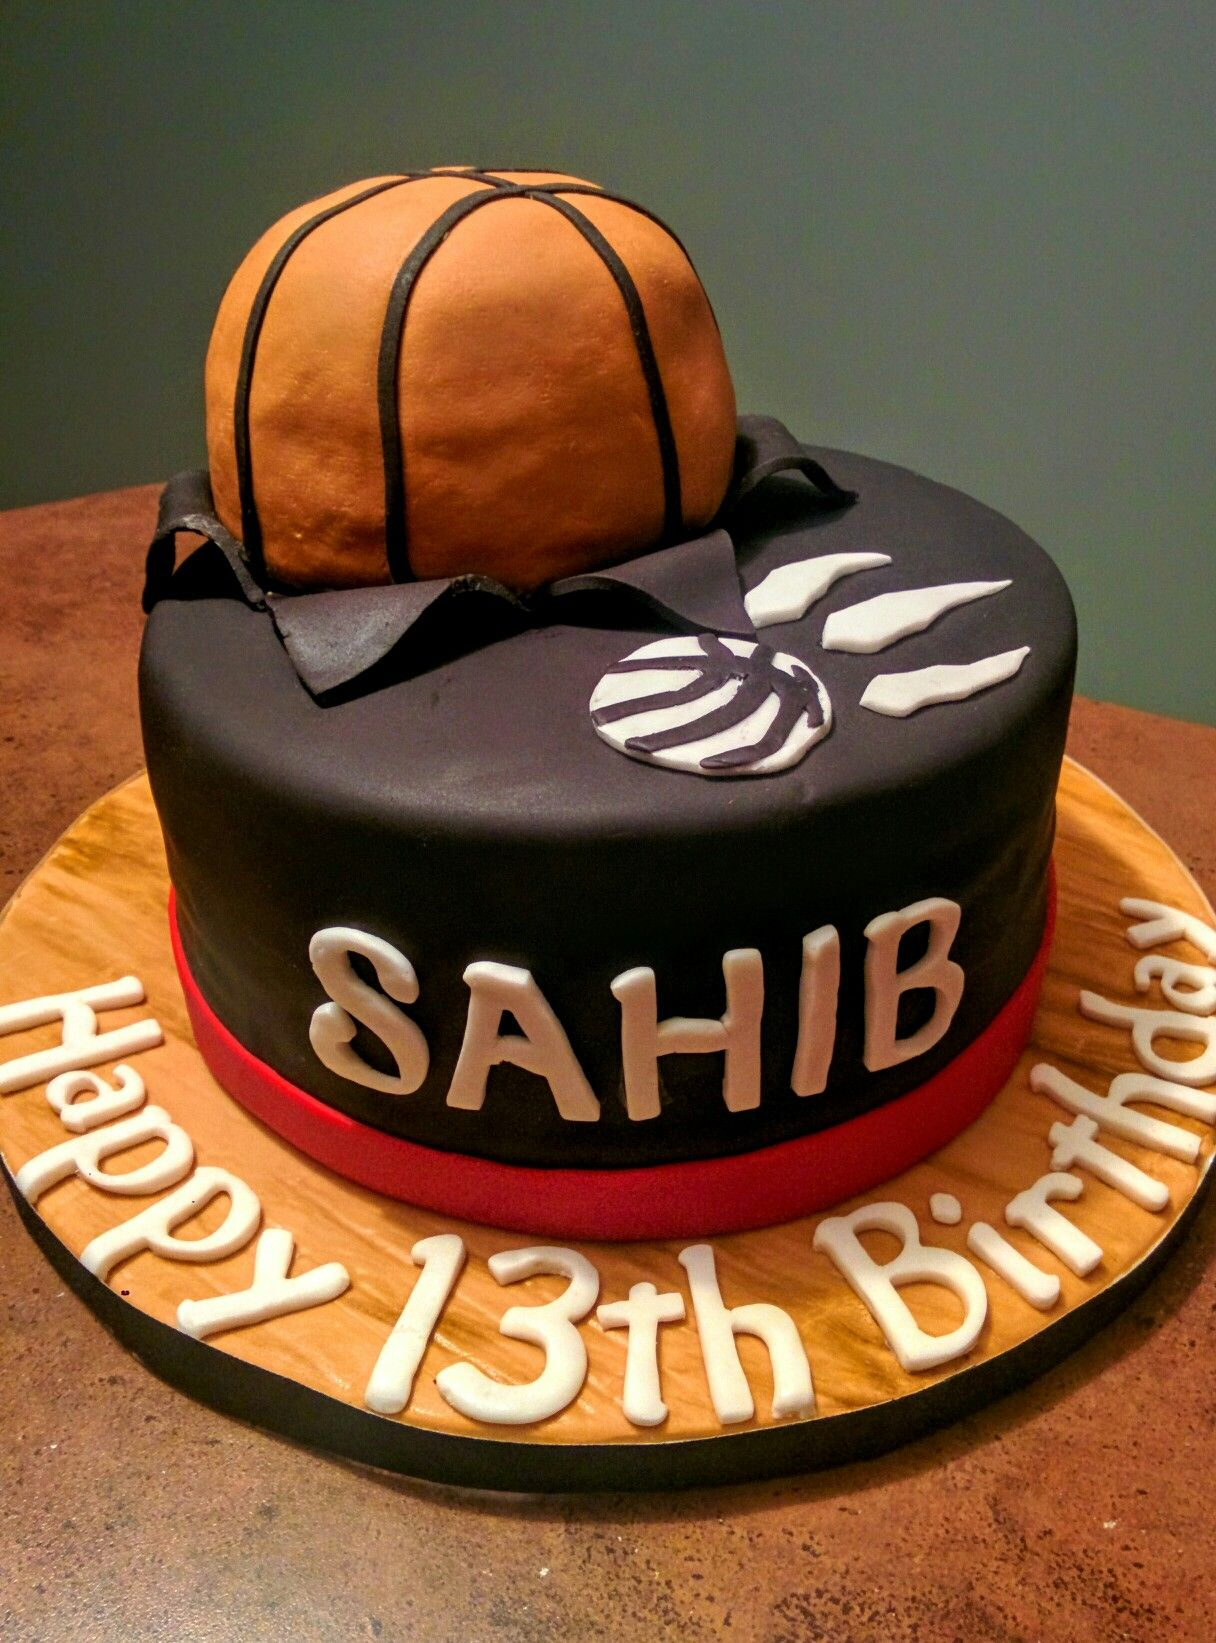 Raptors Basketball Cake Special Occasion Cakes Cake Occasion Cakes